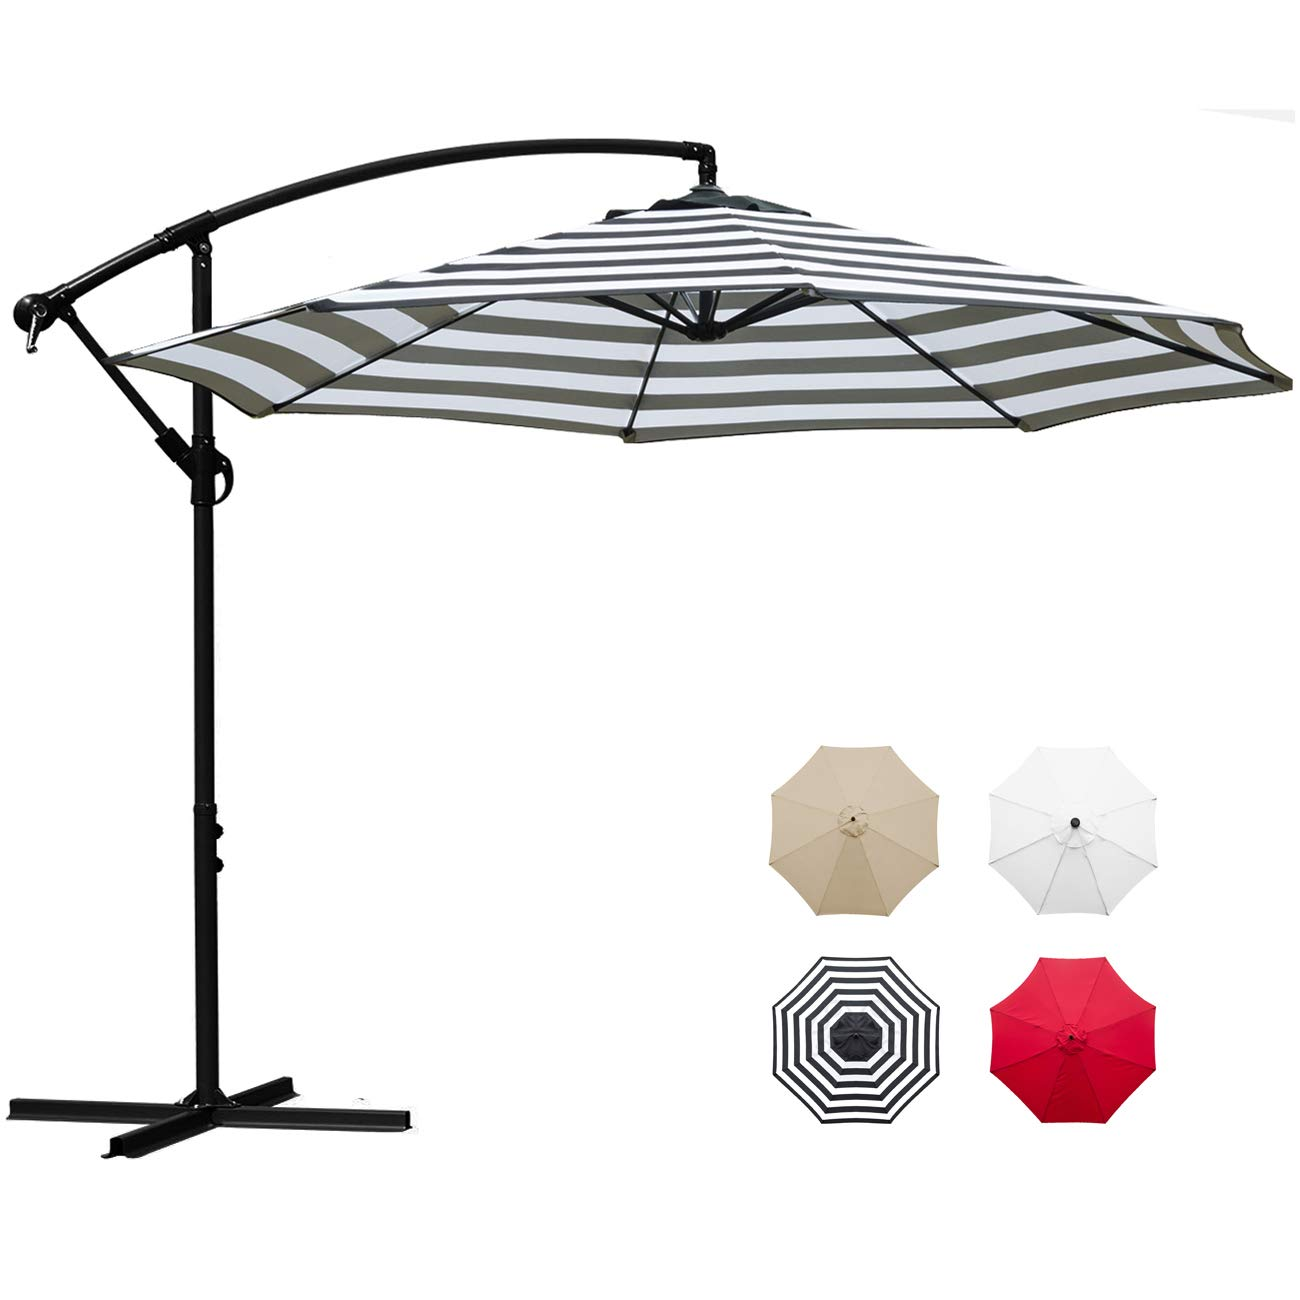 Sunnyglade 10' Outdoor Adjustable Offset Cantilever Hanging Patio Umbrella (Black and White) by Sunnyglade